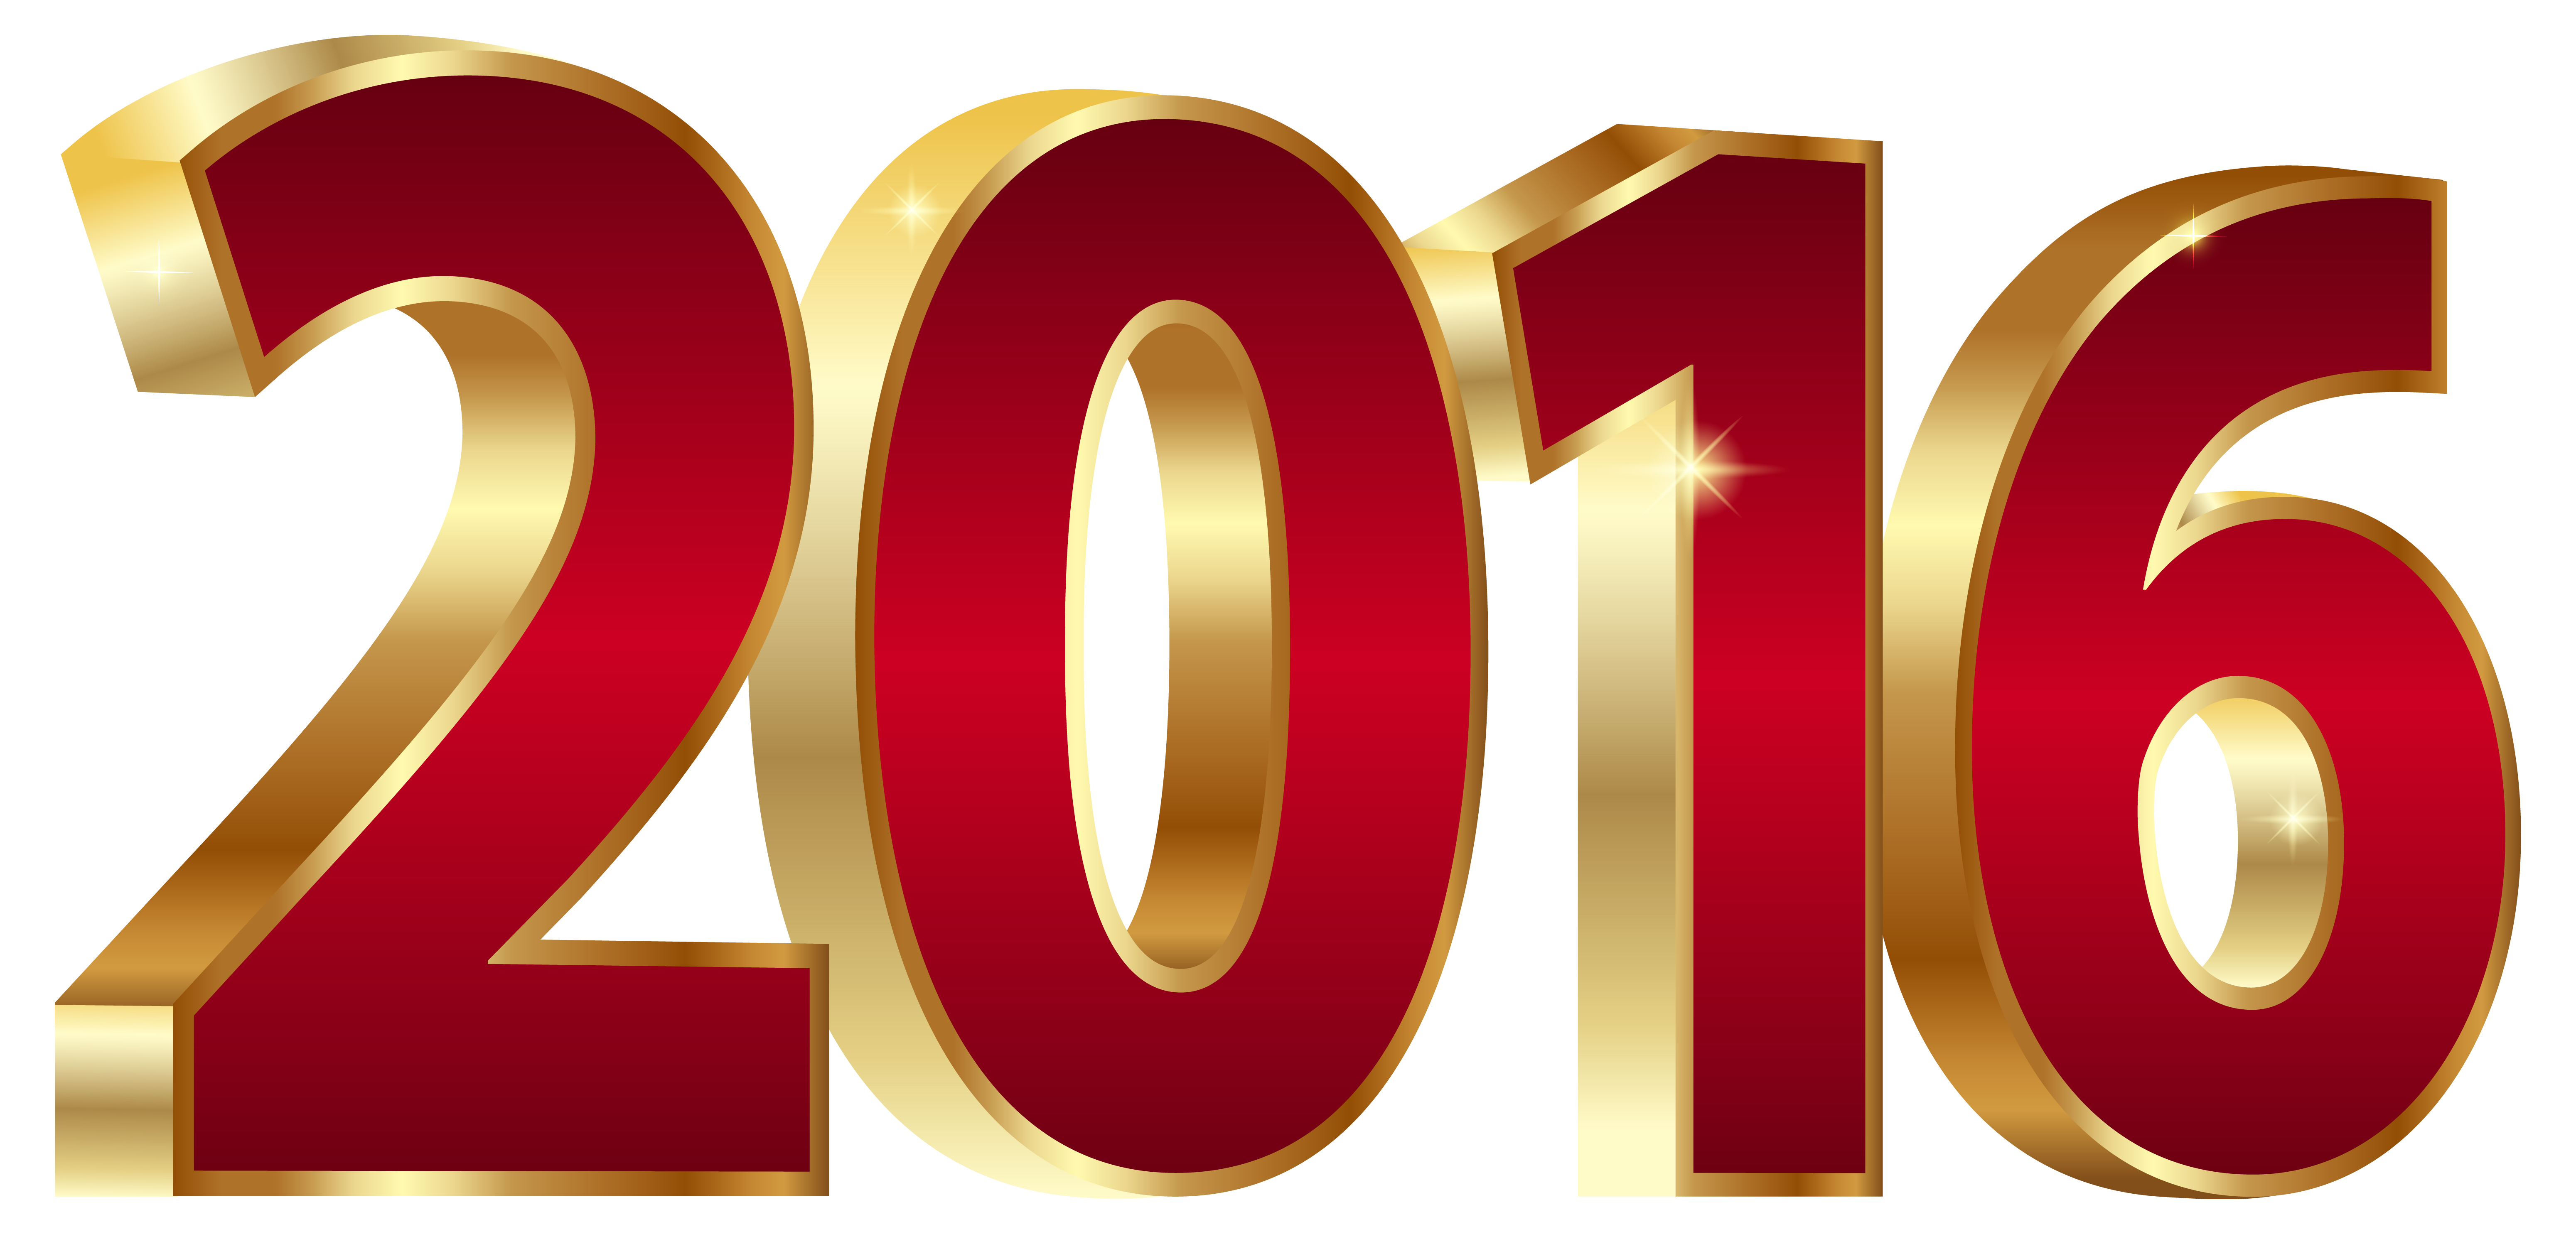 2016 movie list how many have you seen furthermore 2016 scholarships fastweb in addition 2016 in review best of 2016 technology in music education as well the woot list 2016 likewise 2016 year in review. on 2016